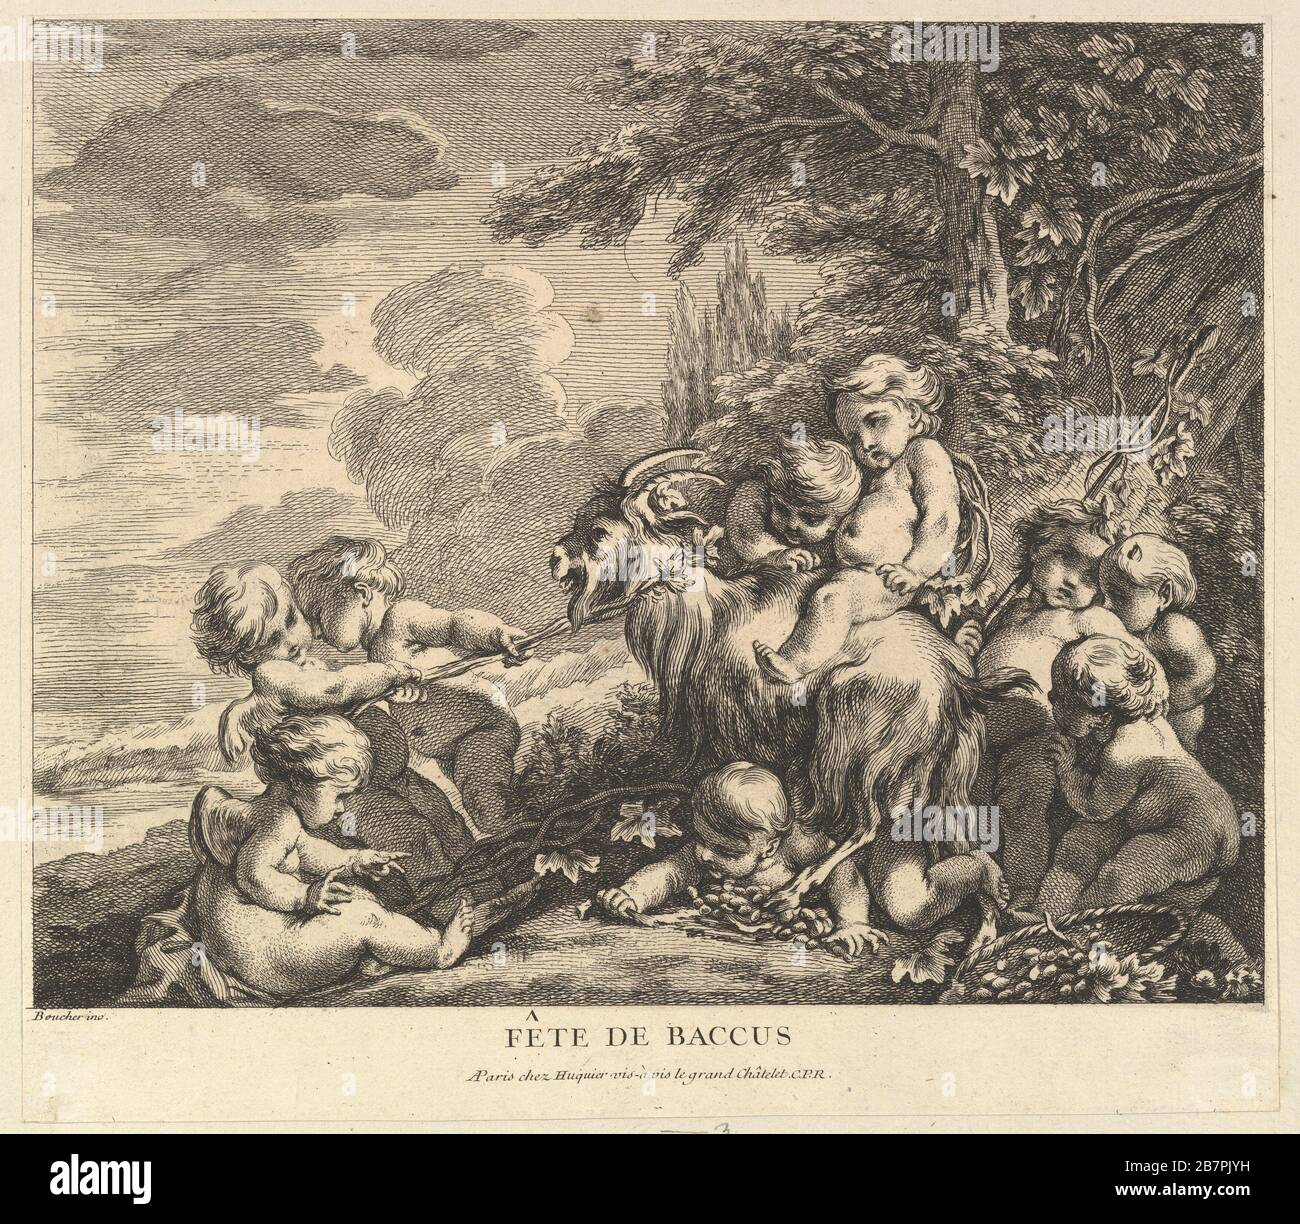 The Feast of Bacchus, ca. 1738. Stock Photo